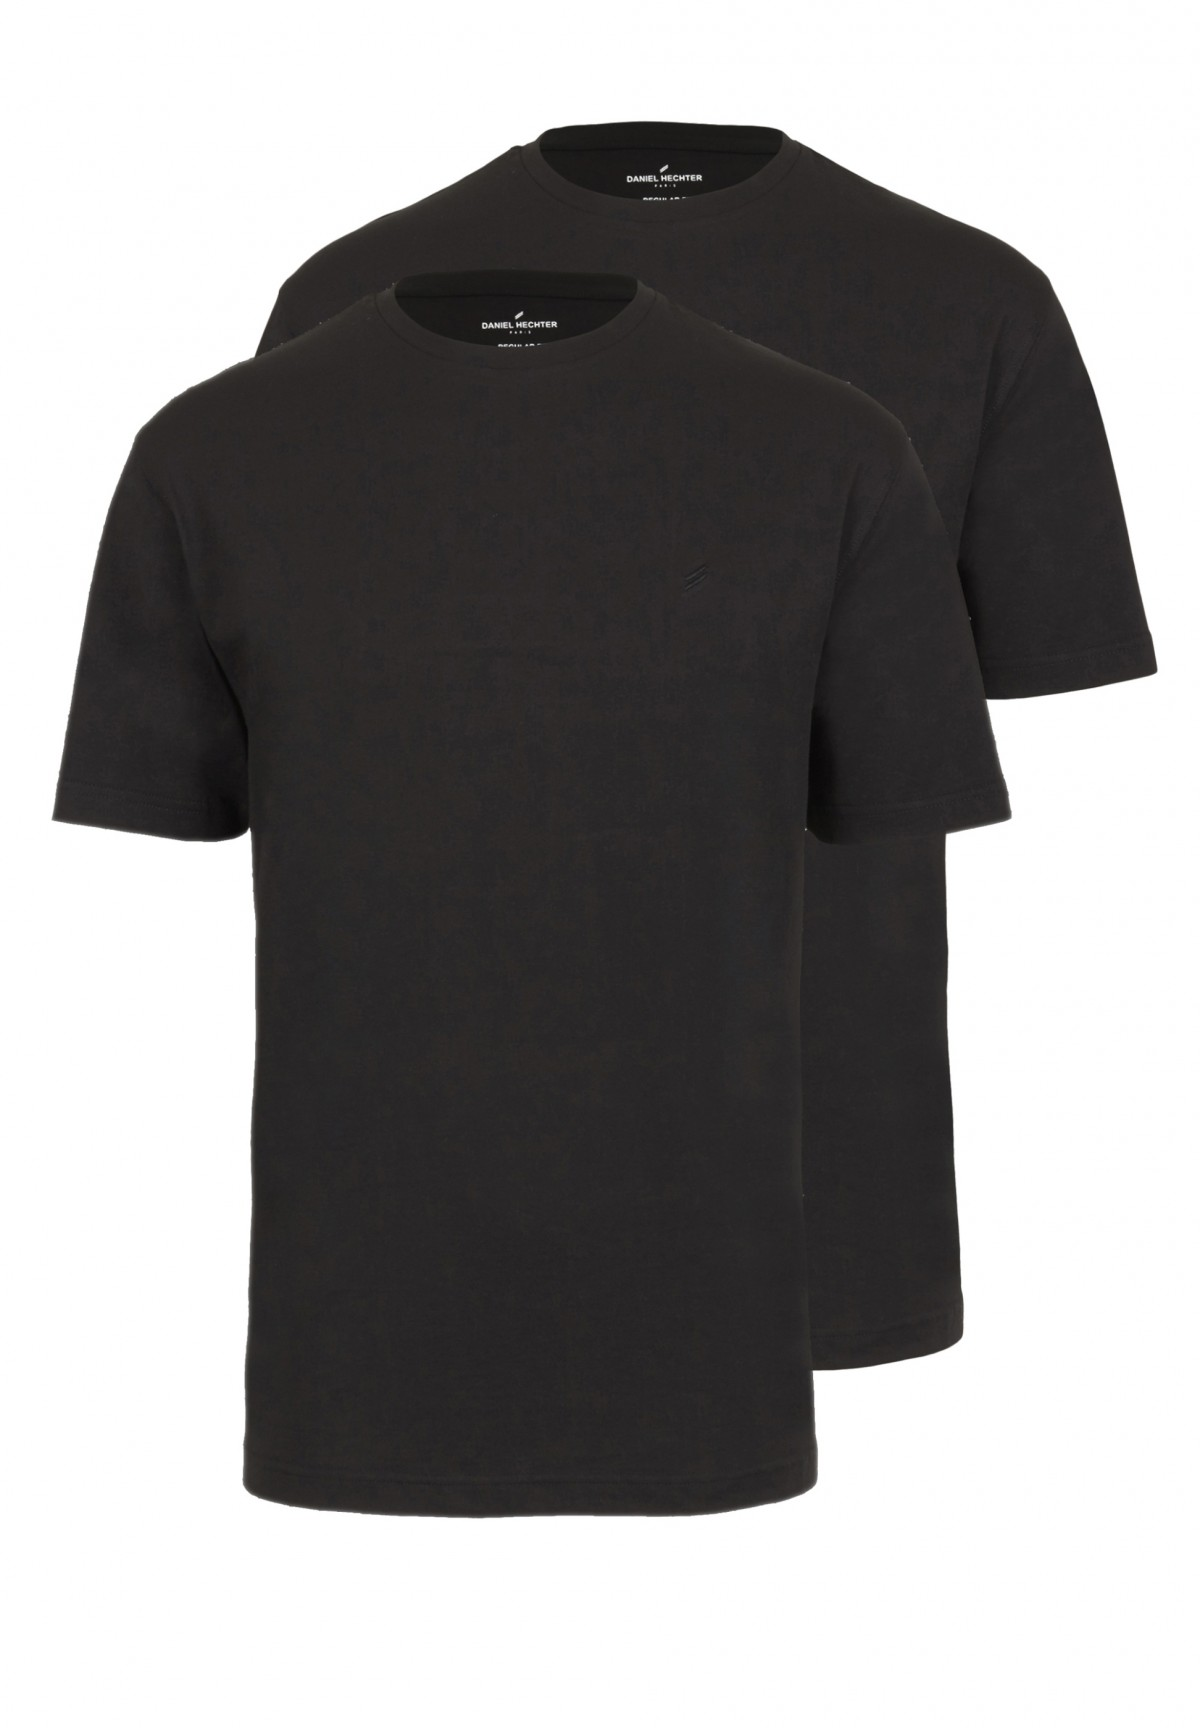 Doppelpack T-Shirt Rundhals Regular-fit / T-Shirt Rundhals Regular-fit